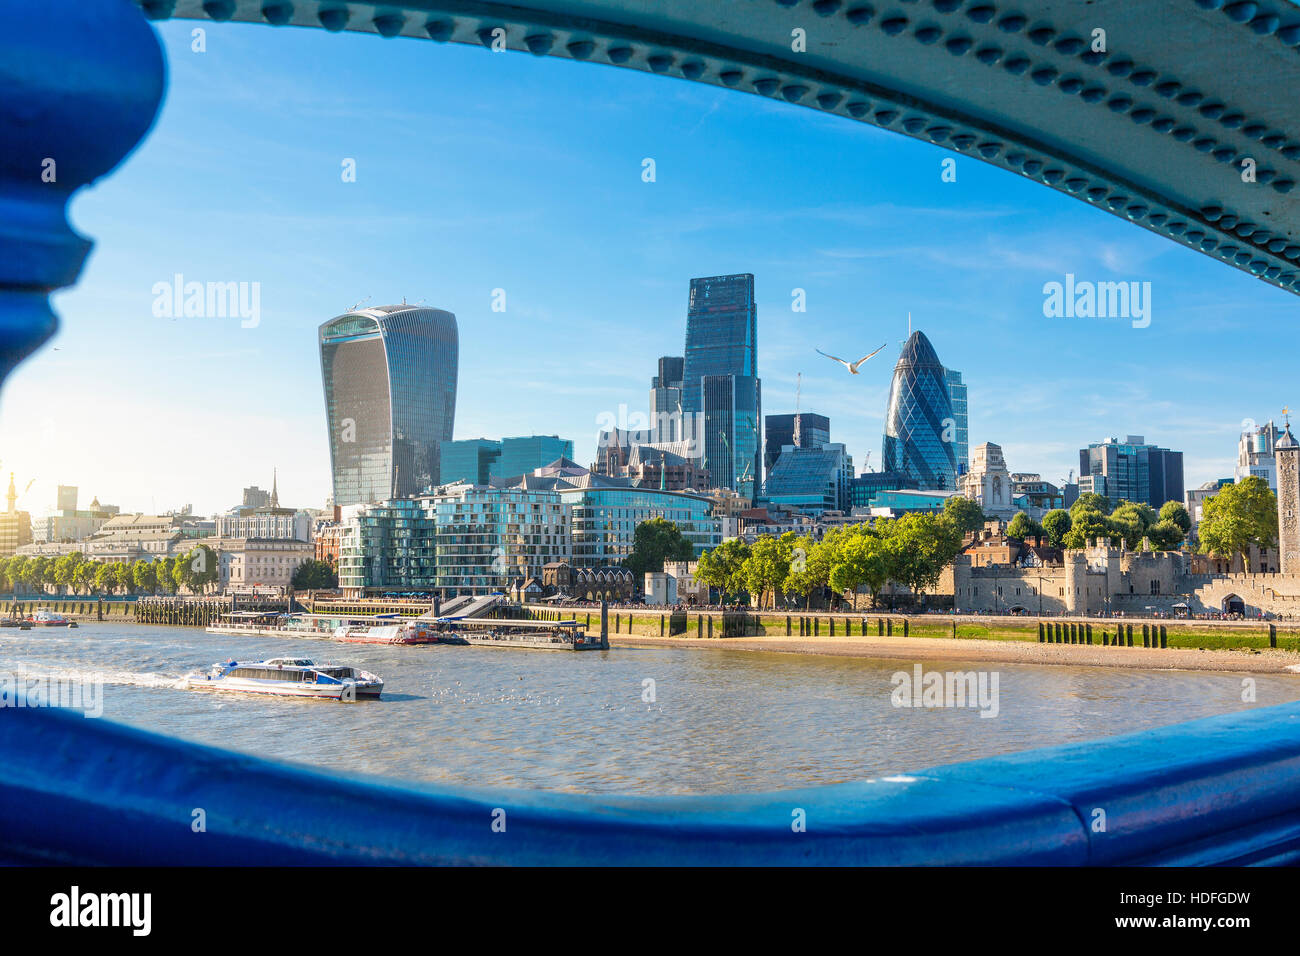 City of London one of the leading centers of global finance - Stock Image